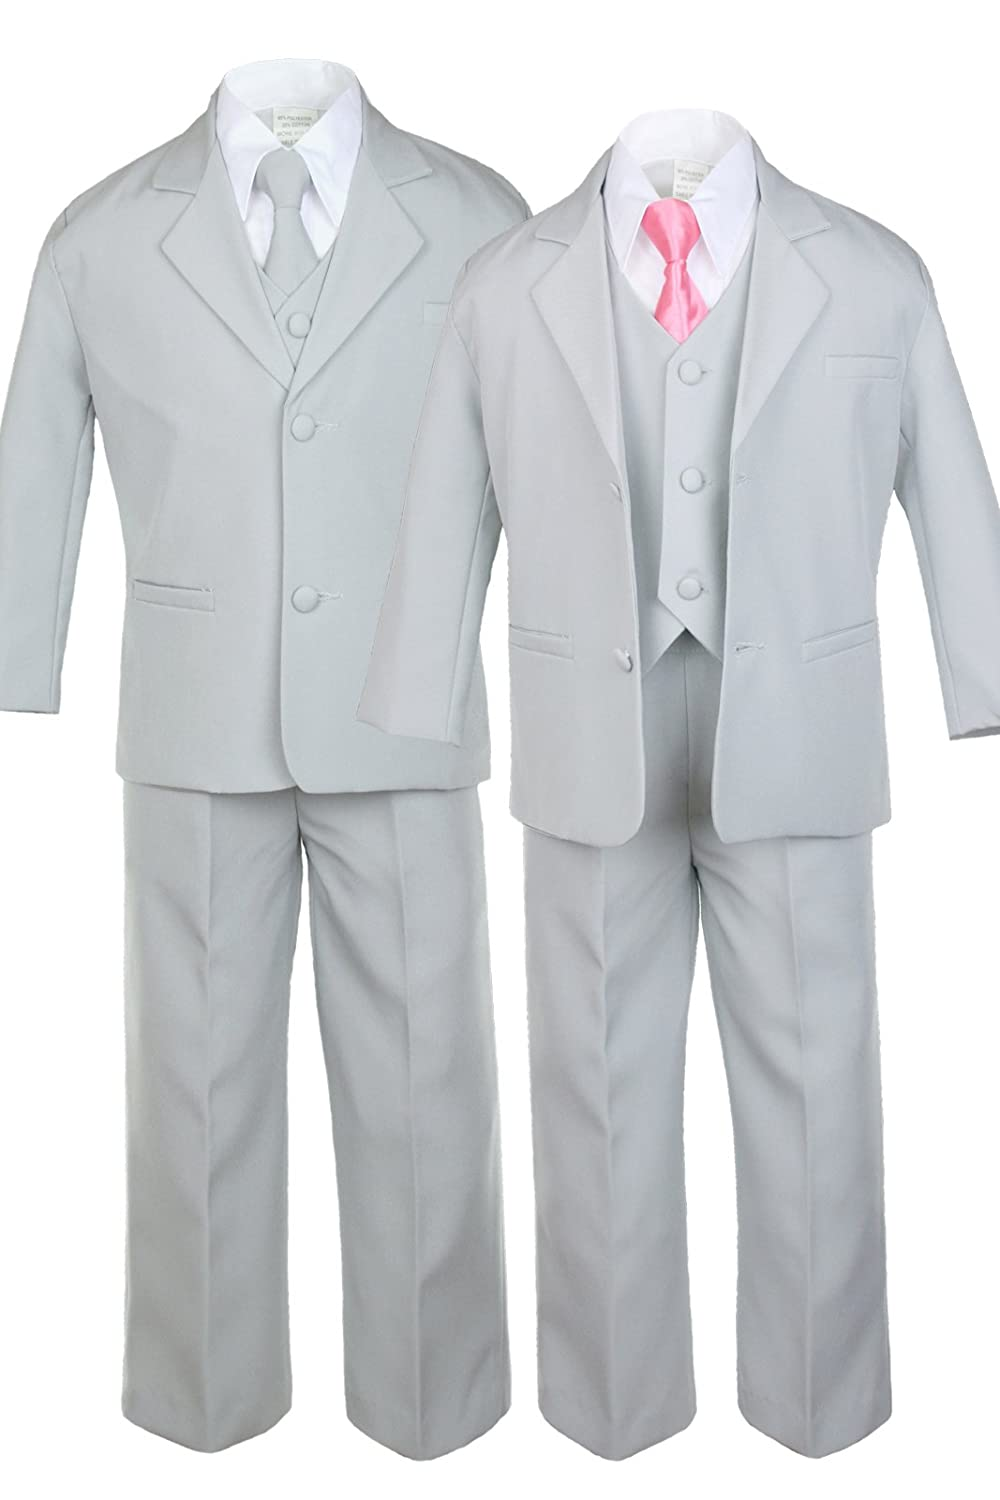 Unotux 6pc Boys Gray Tuxedo Suits with Satin Coral Red Necktie from Baby to Teen